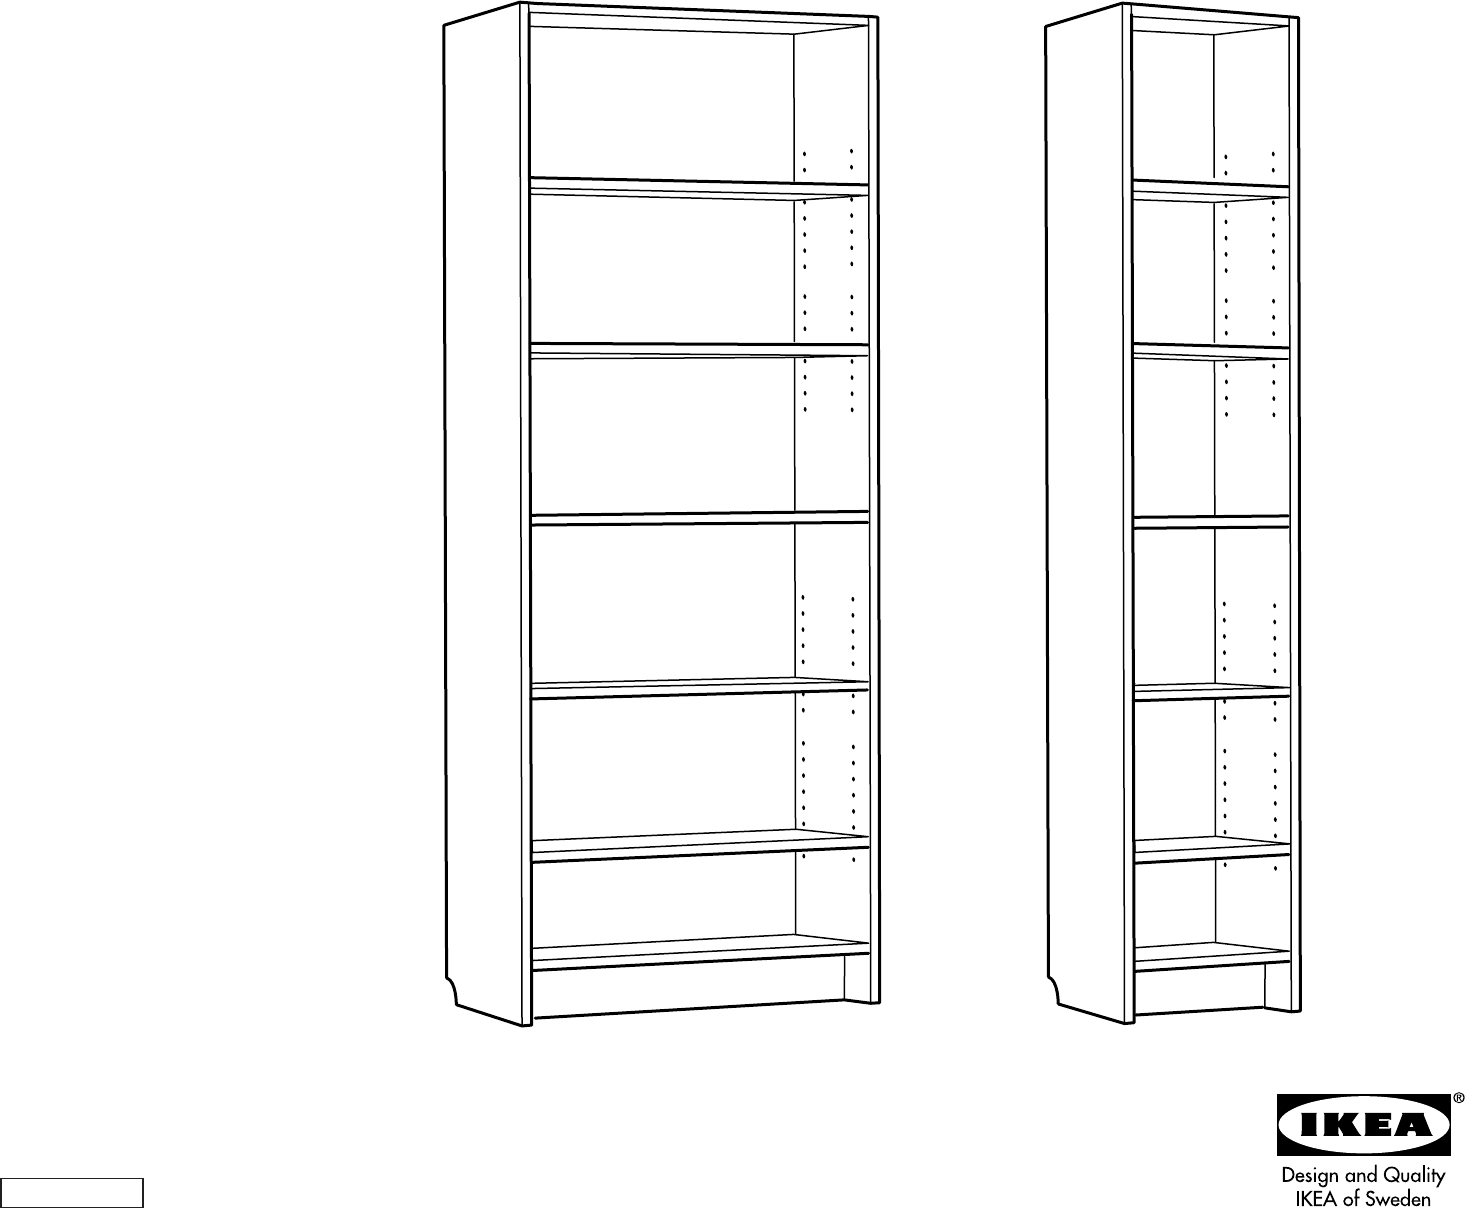 inter ikea systems bv 200516 aa 19930 7